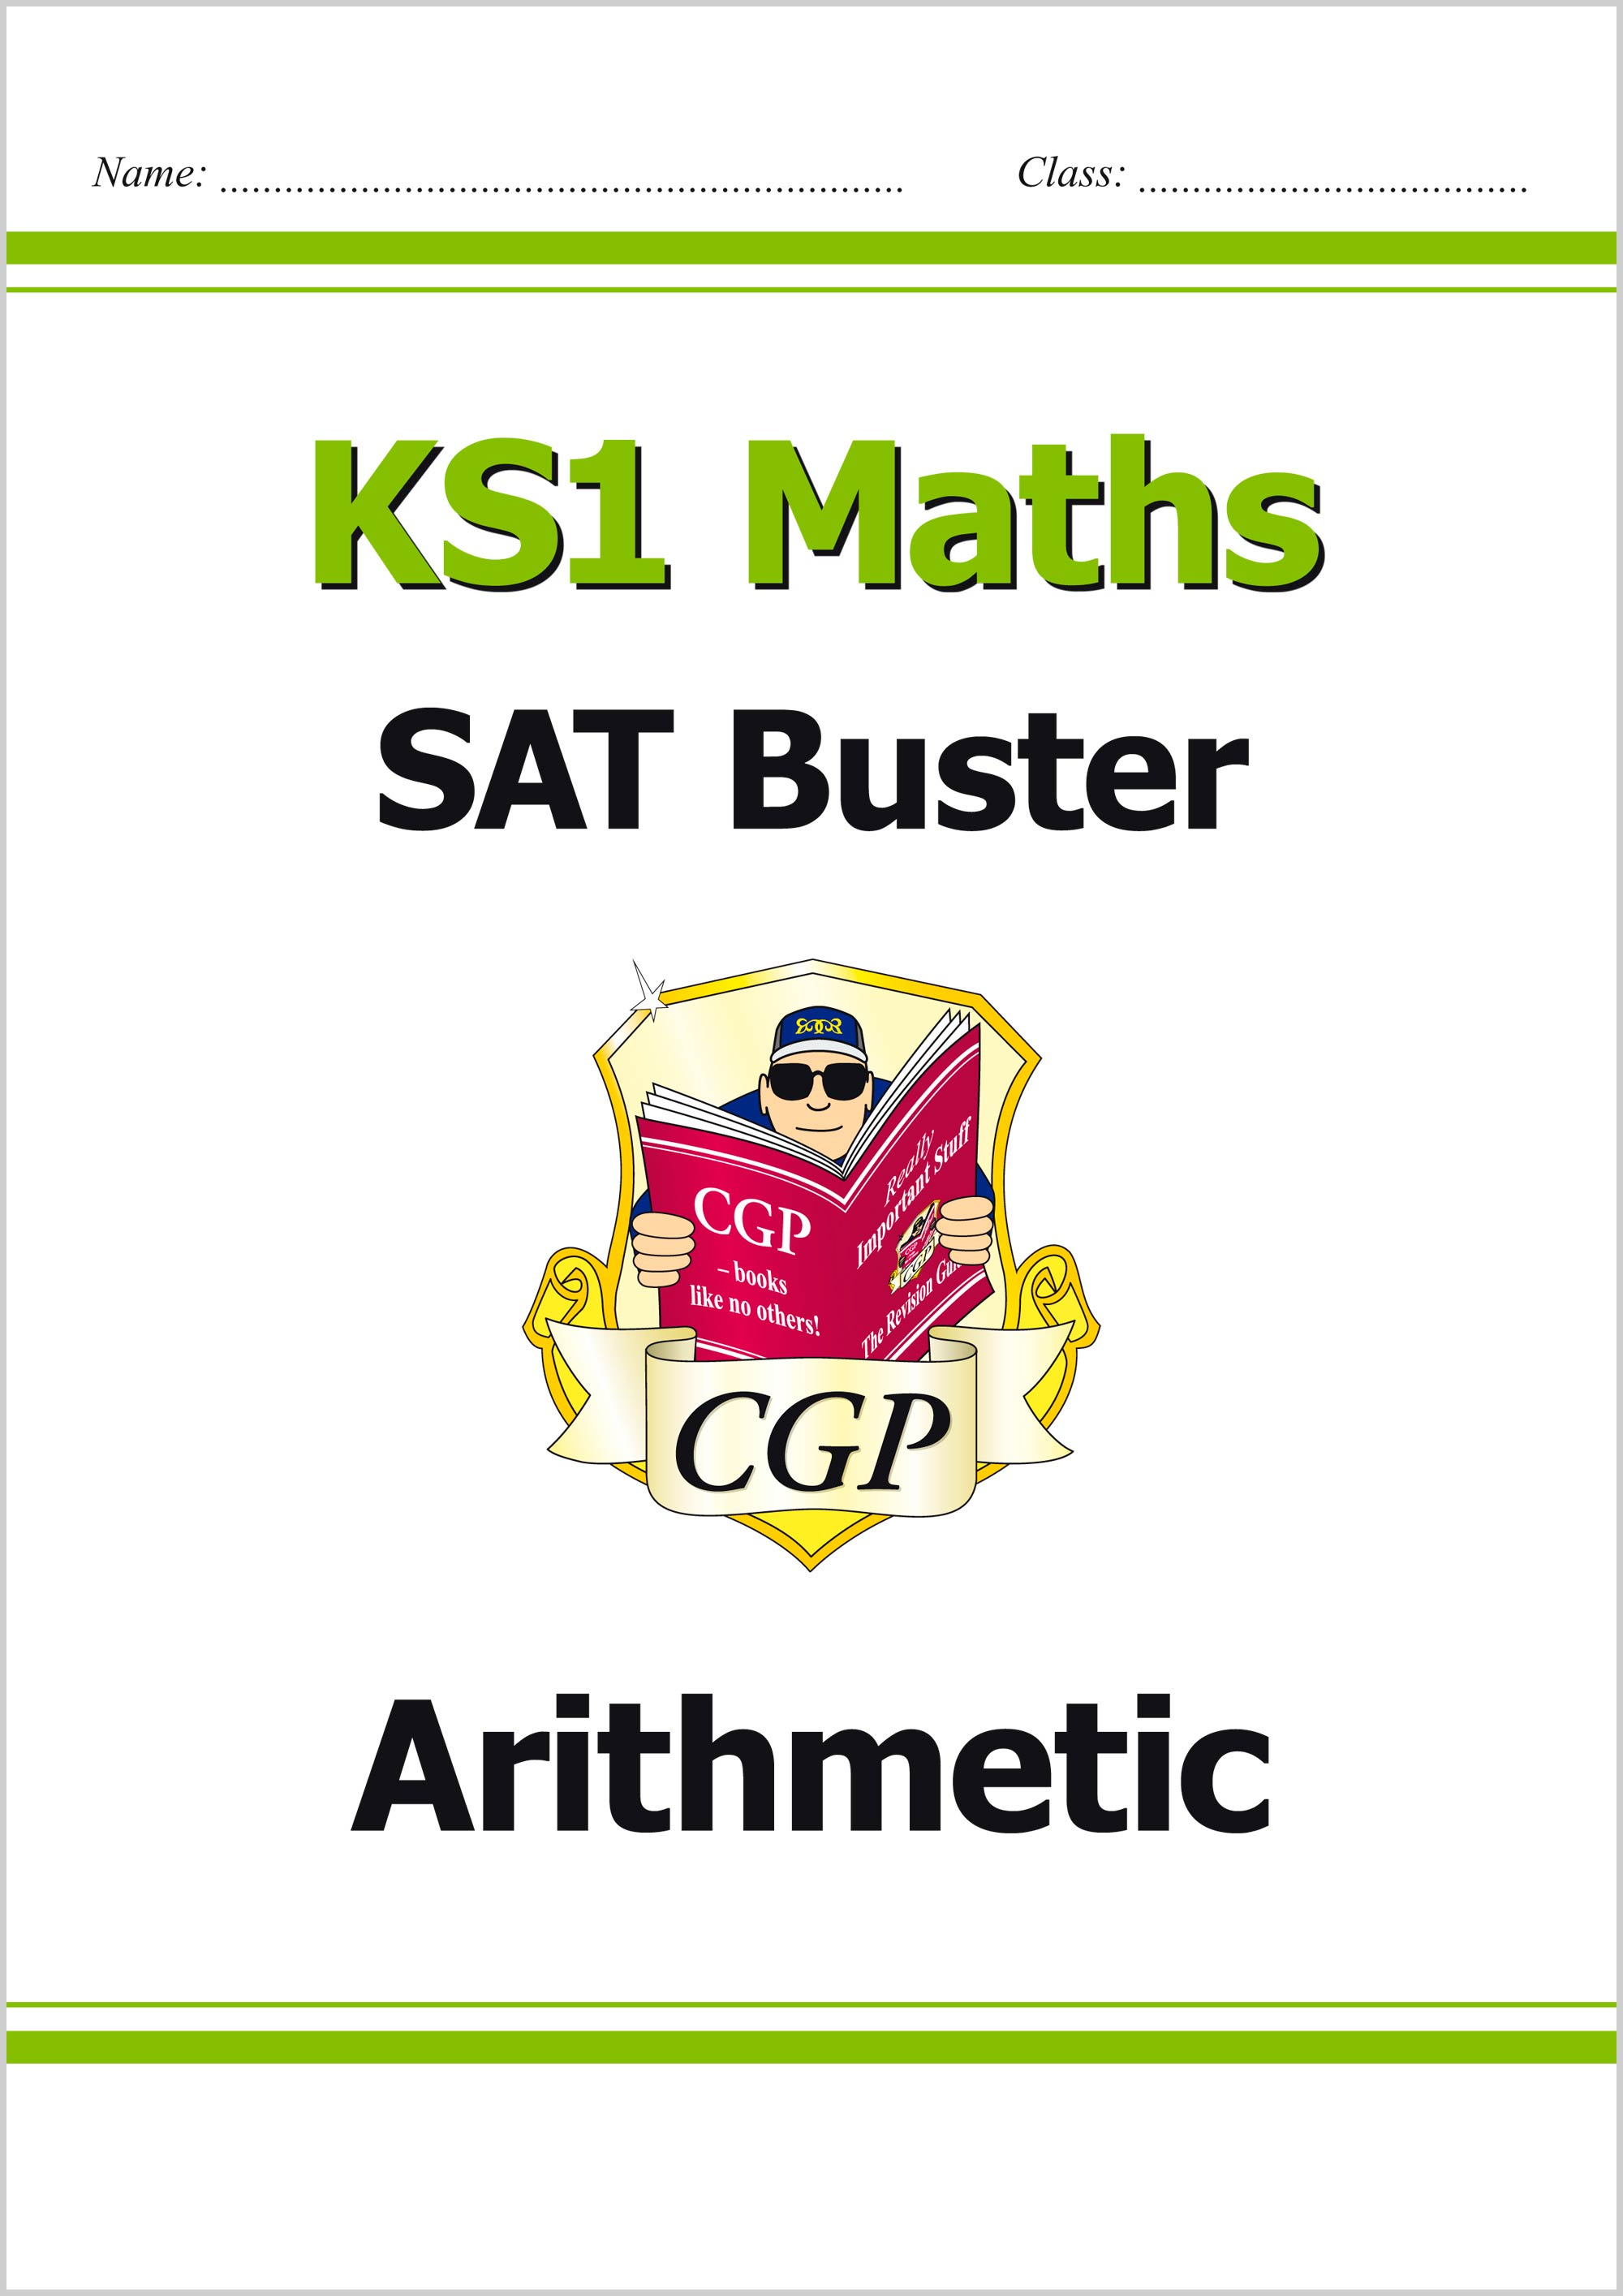 M2ARI11 - KS1 Maths SAT Buster: Arithmetic (for tests in 2018 and beyond)